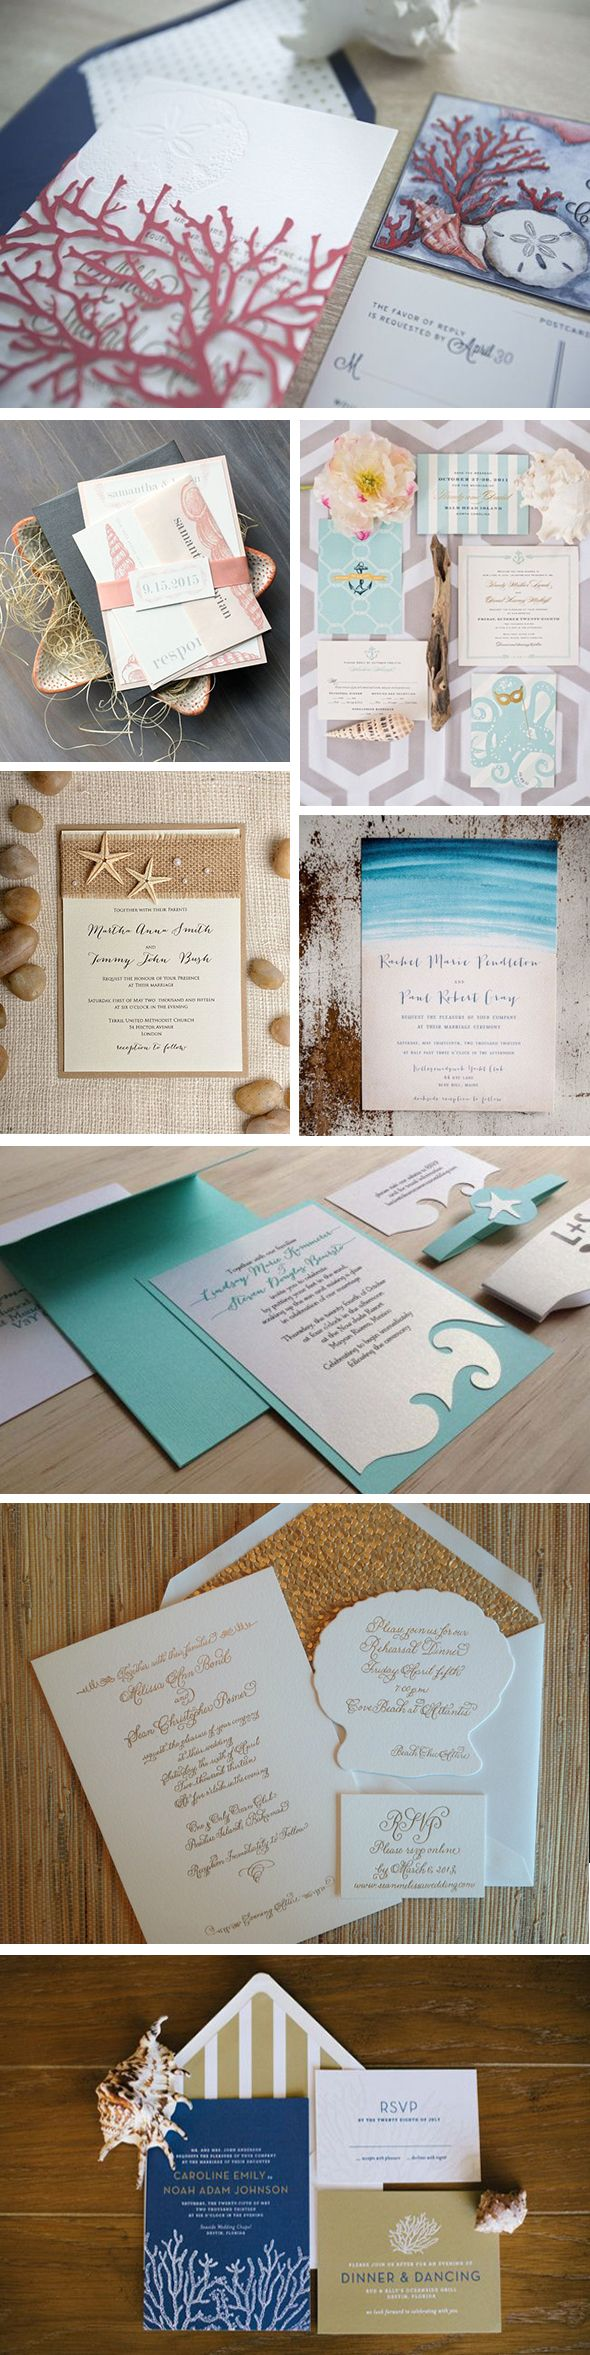 beach wedding invitation examples%0A Beach and Sea Inspired Wedding Invitations